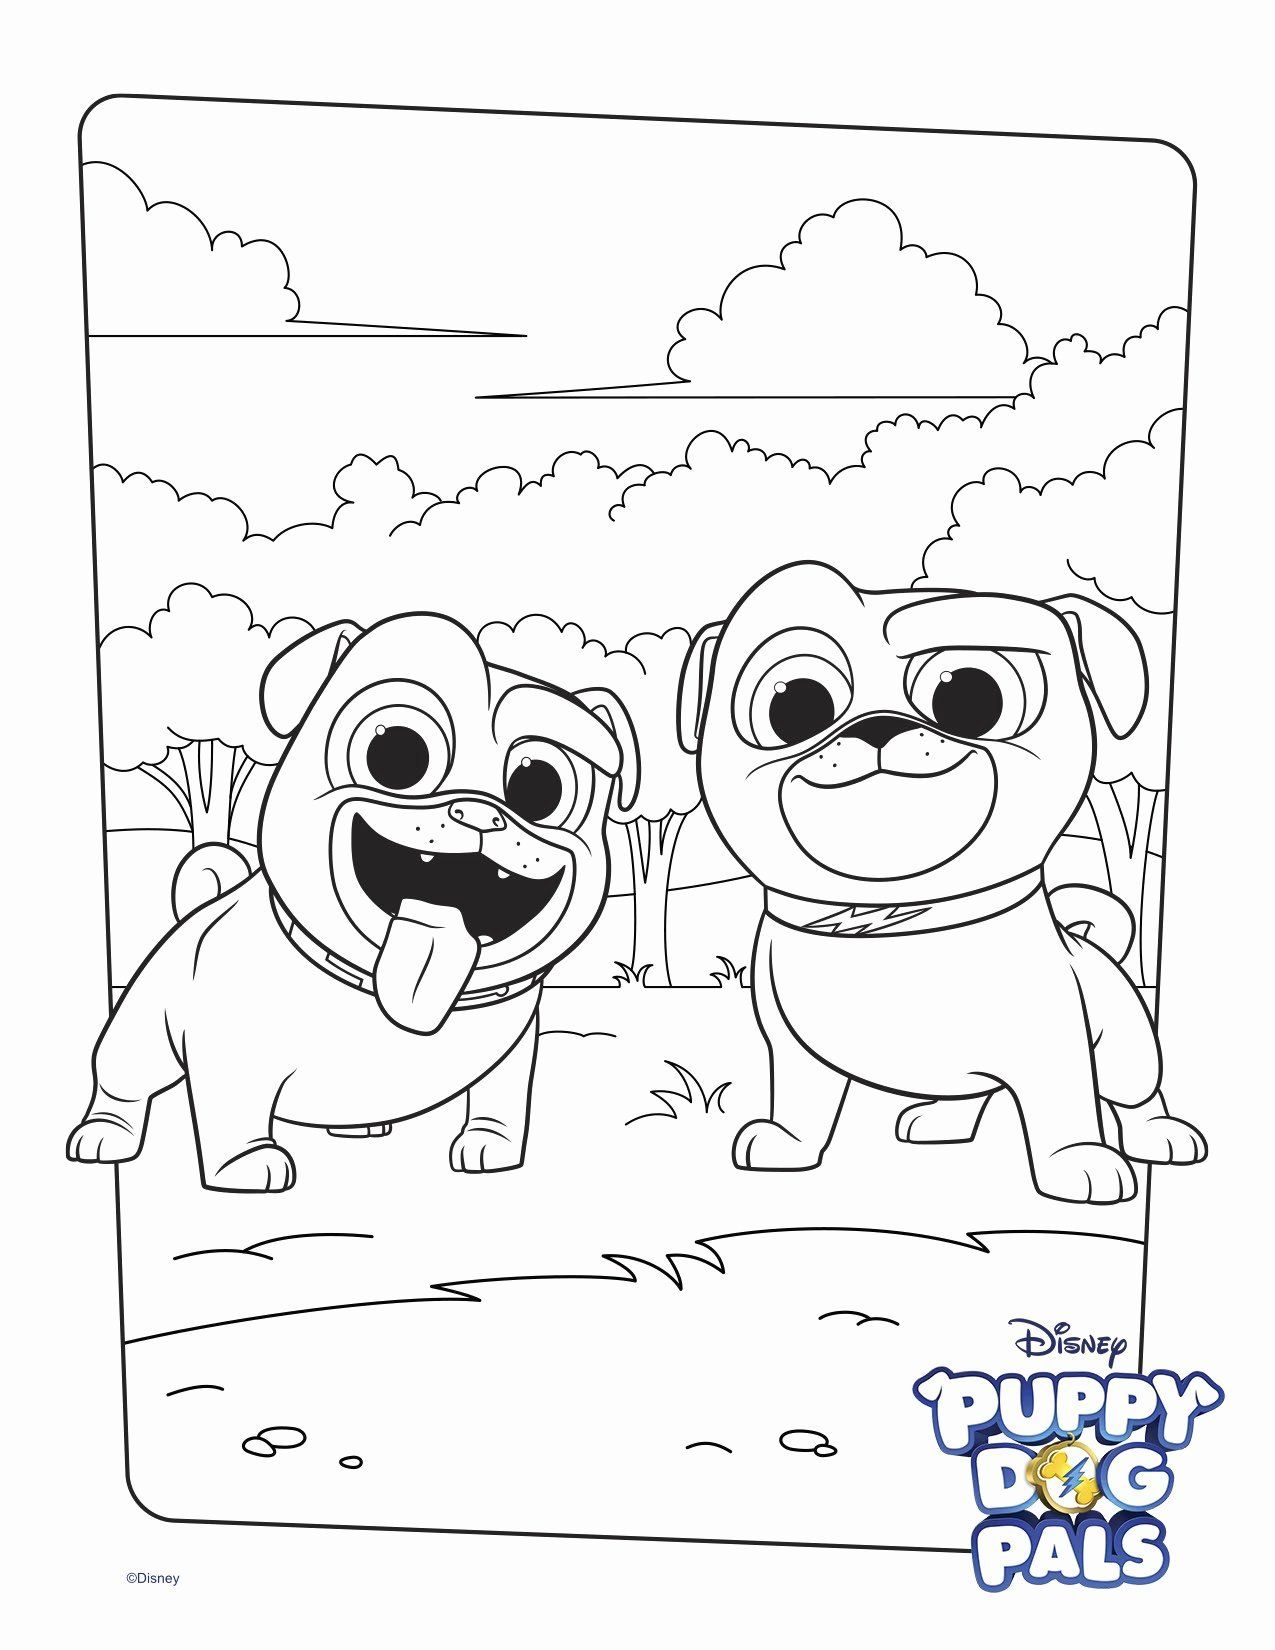 Halloween Dog Coloring Pages Awesome Bingo And Rolly Coloring Page Activity In 2020 Puppy Coloring Pages Dog Coloring Page Disney Coloring Pages